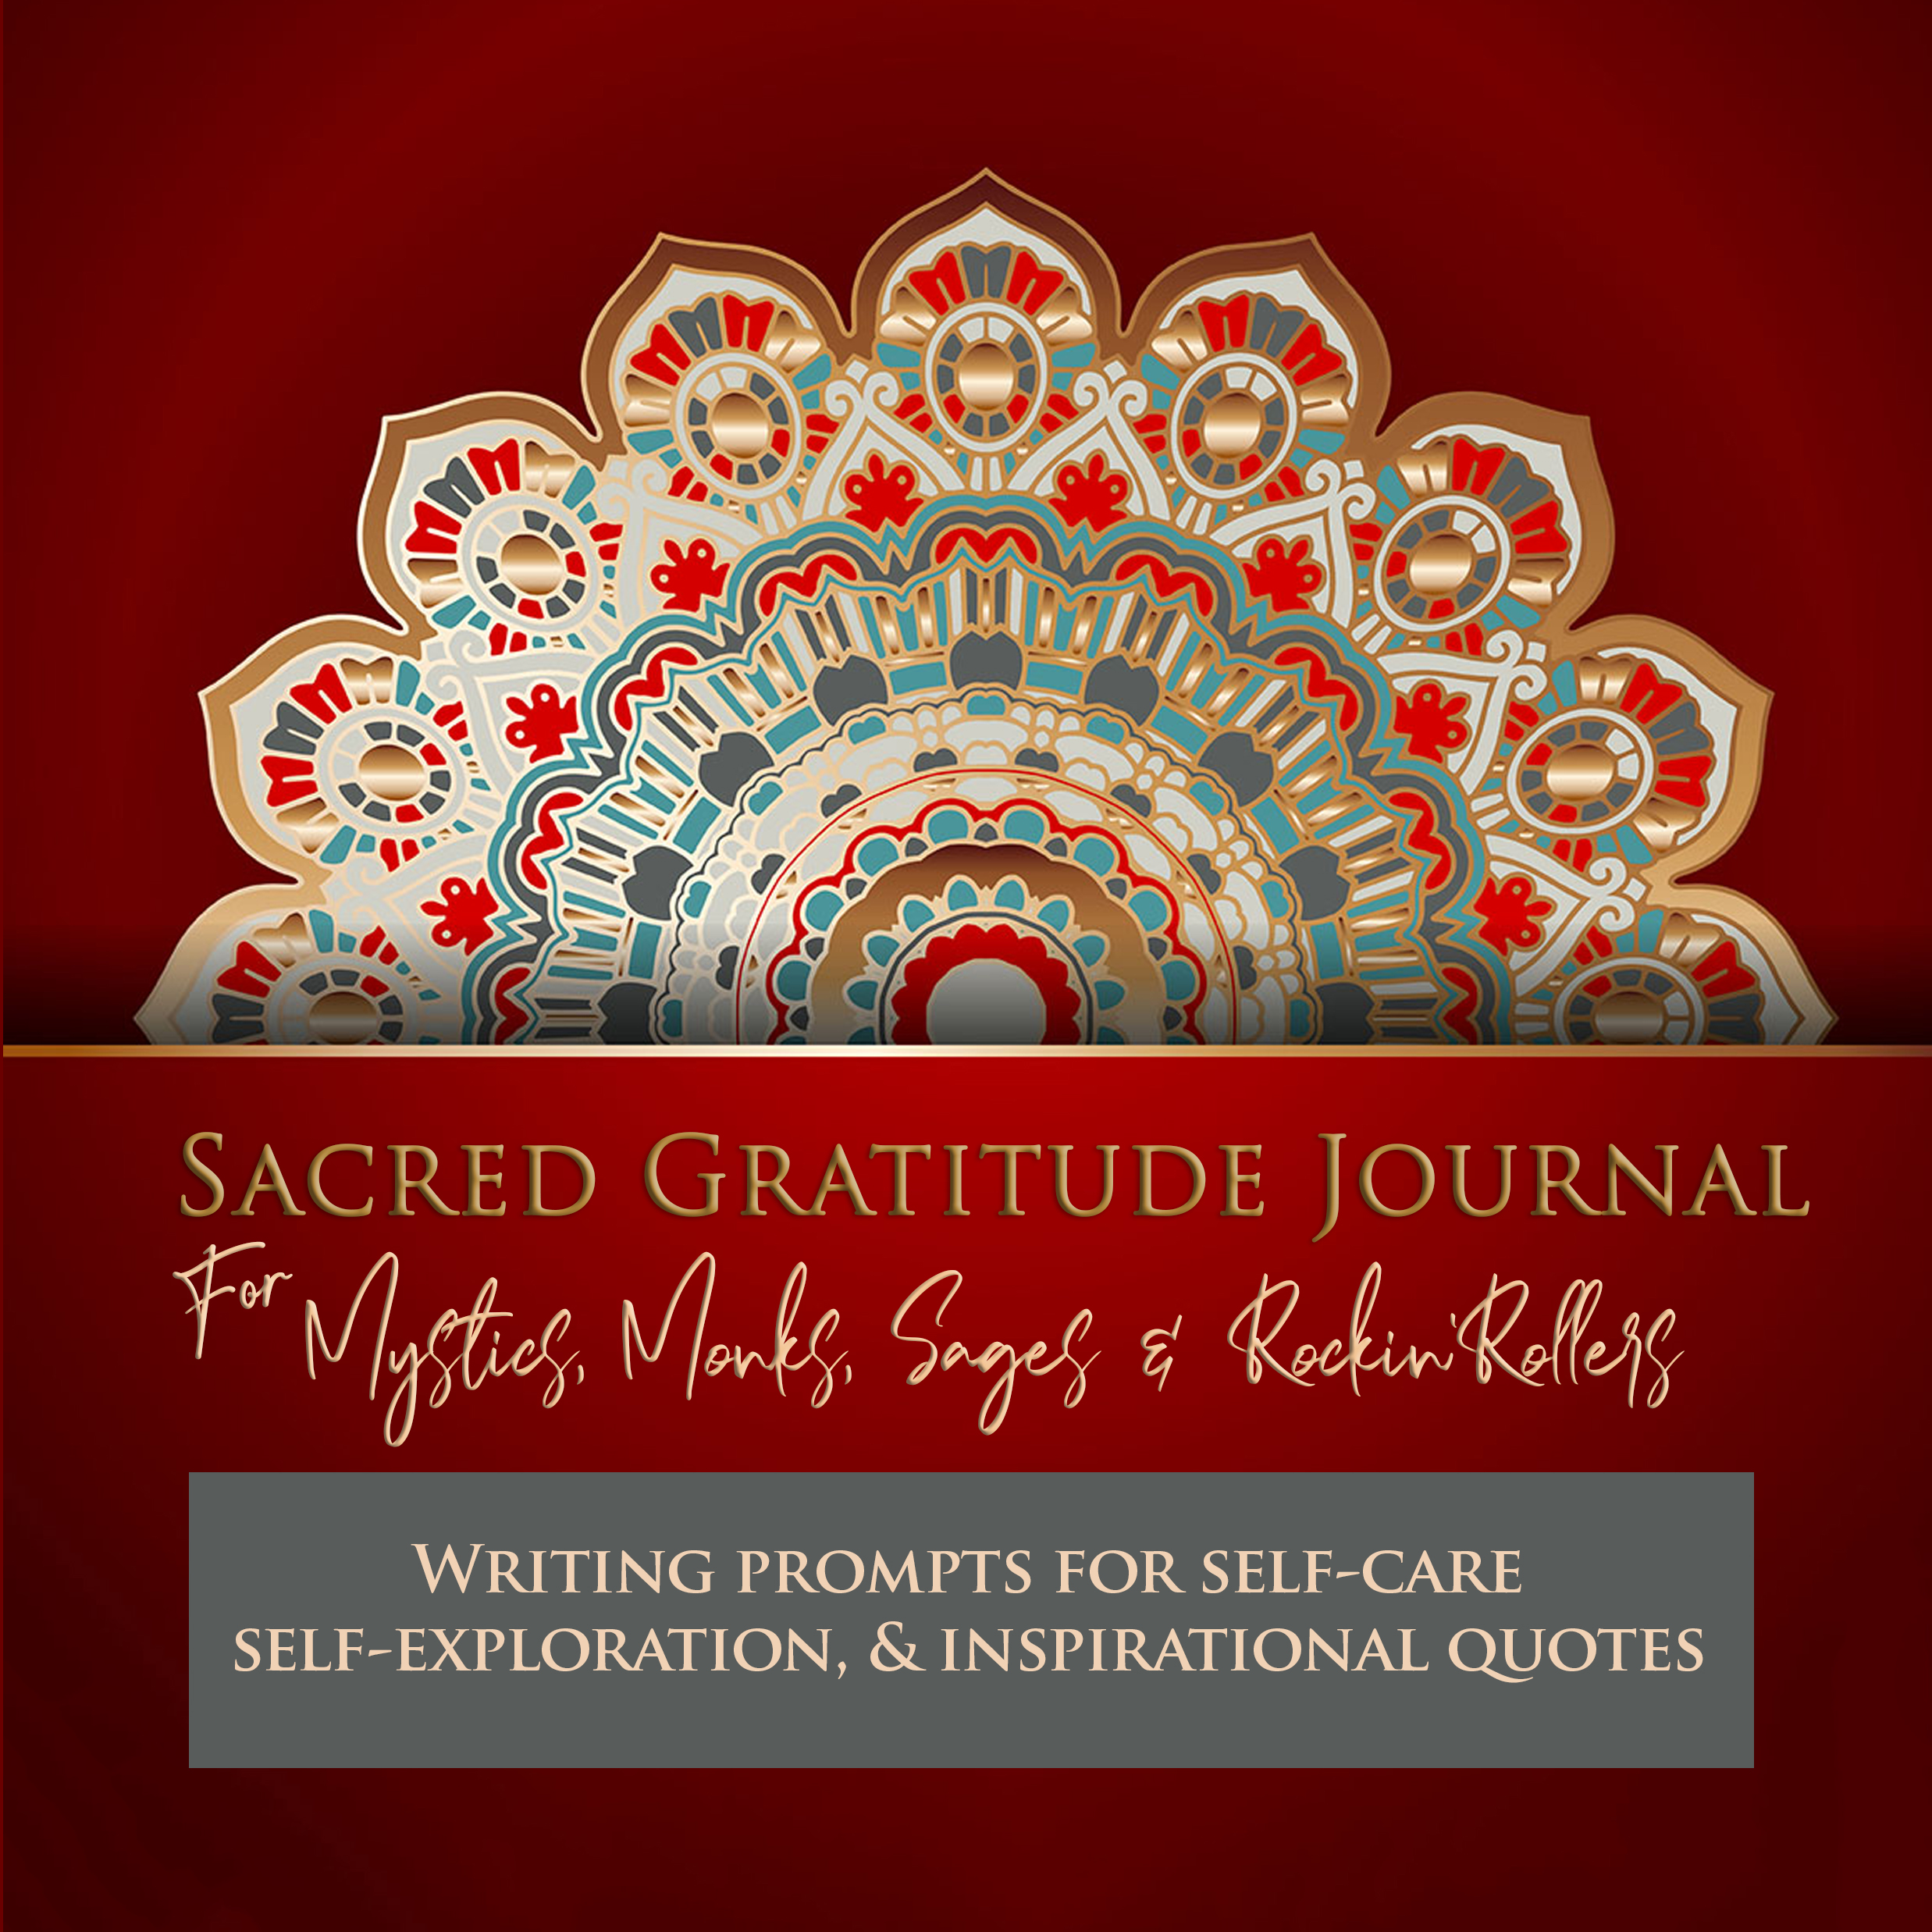 Gratitude Journal with Writing Prompts, for Mystics, Monks, Sages & Rockin' Rollers cover red  120 p